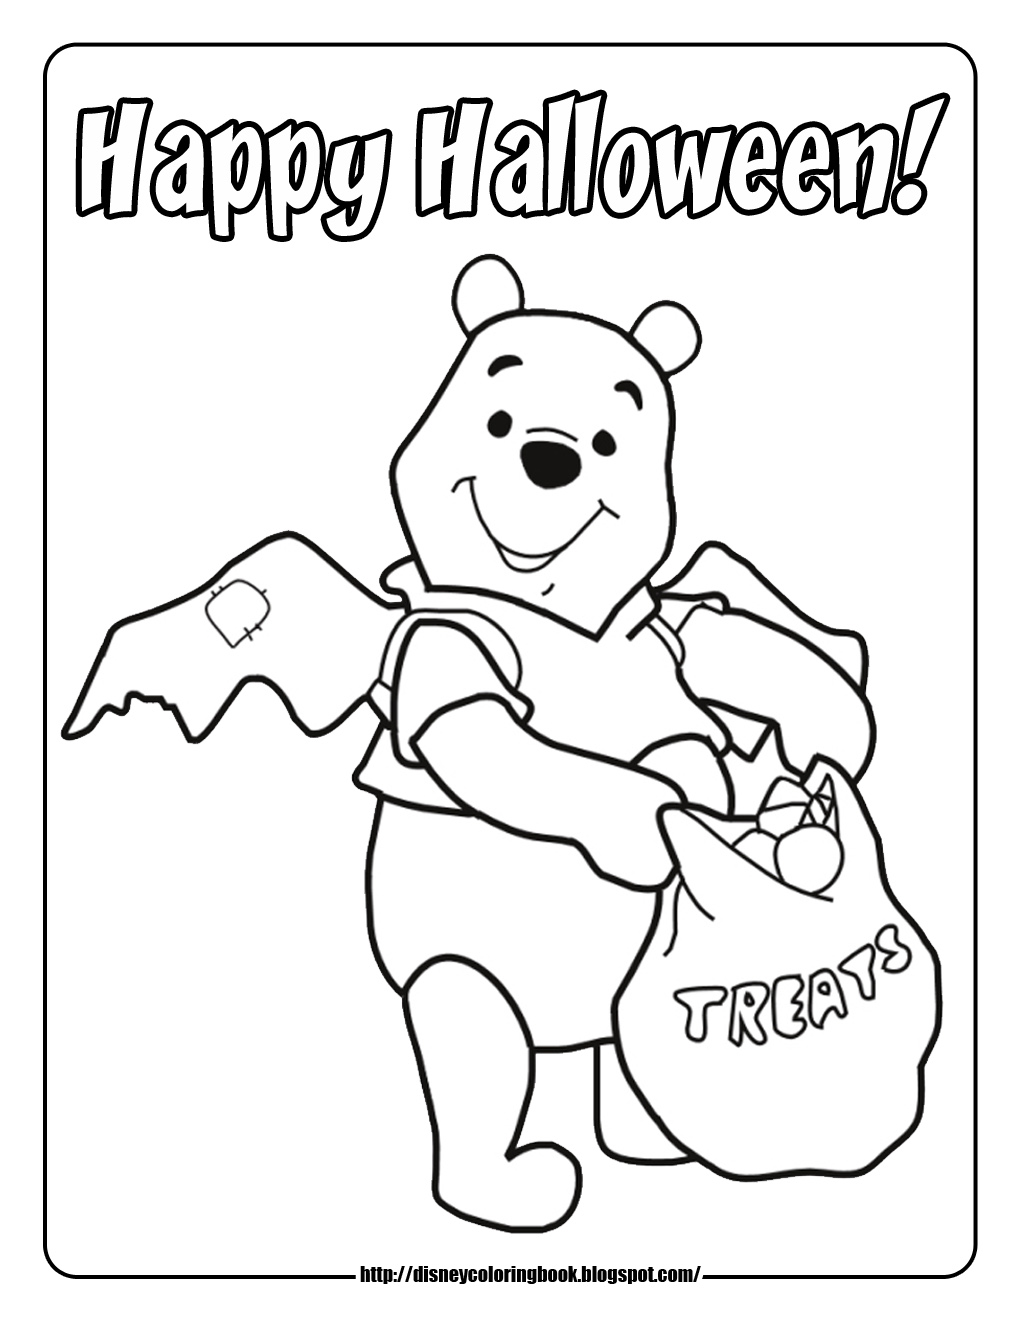 Halloween Coloring Pages Piglet Carving Pumpkin Halloween Coloring Pages  Trick Or Treat Winnie The Pooh